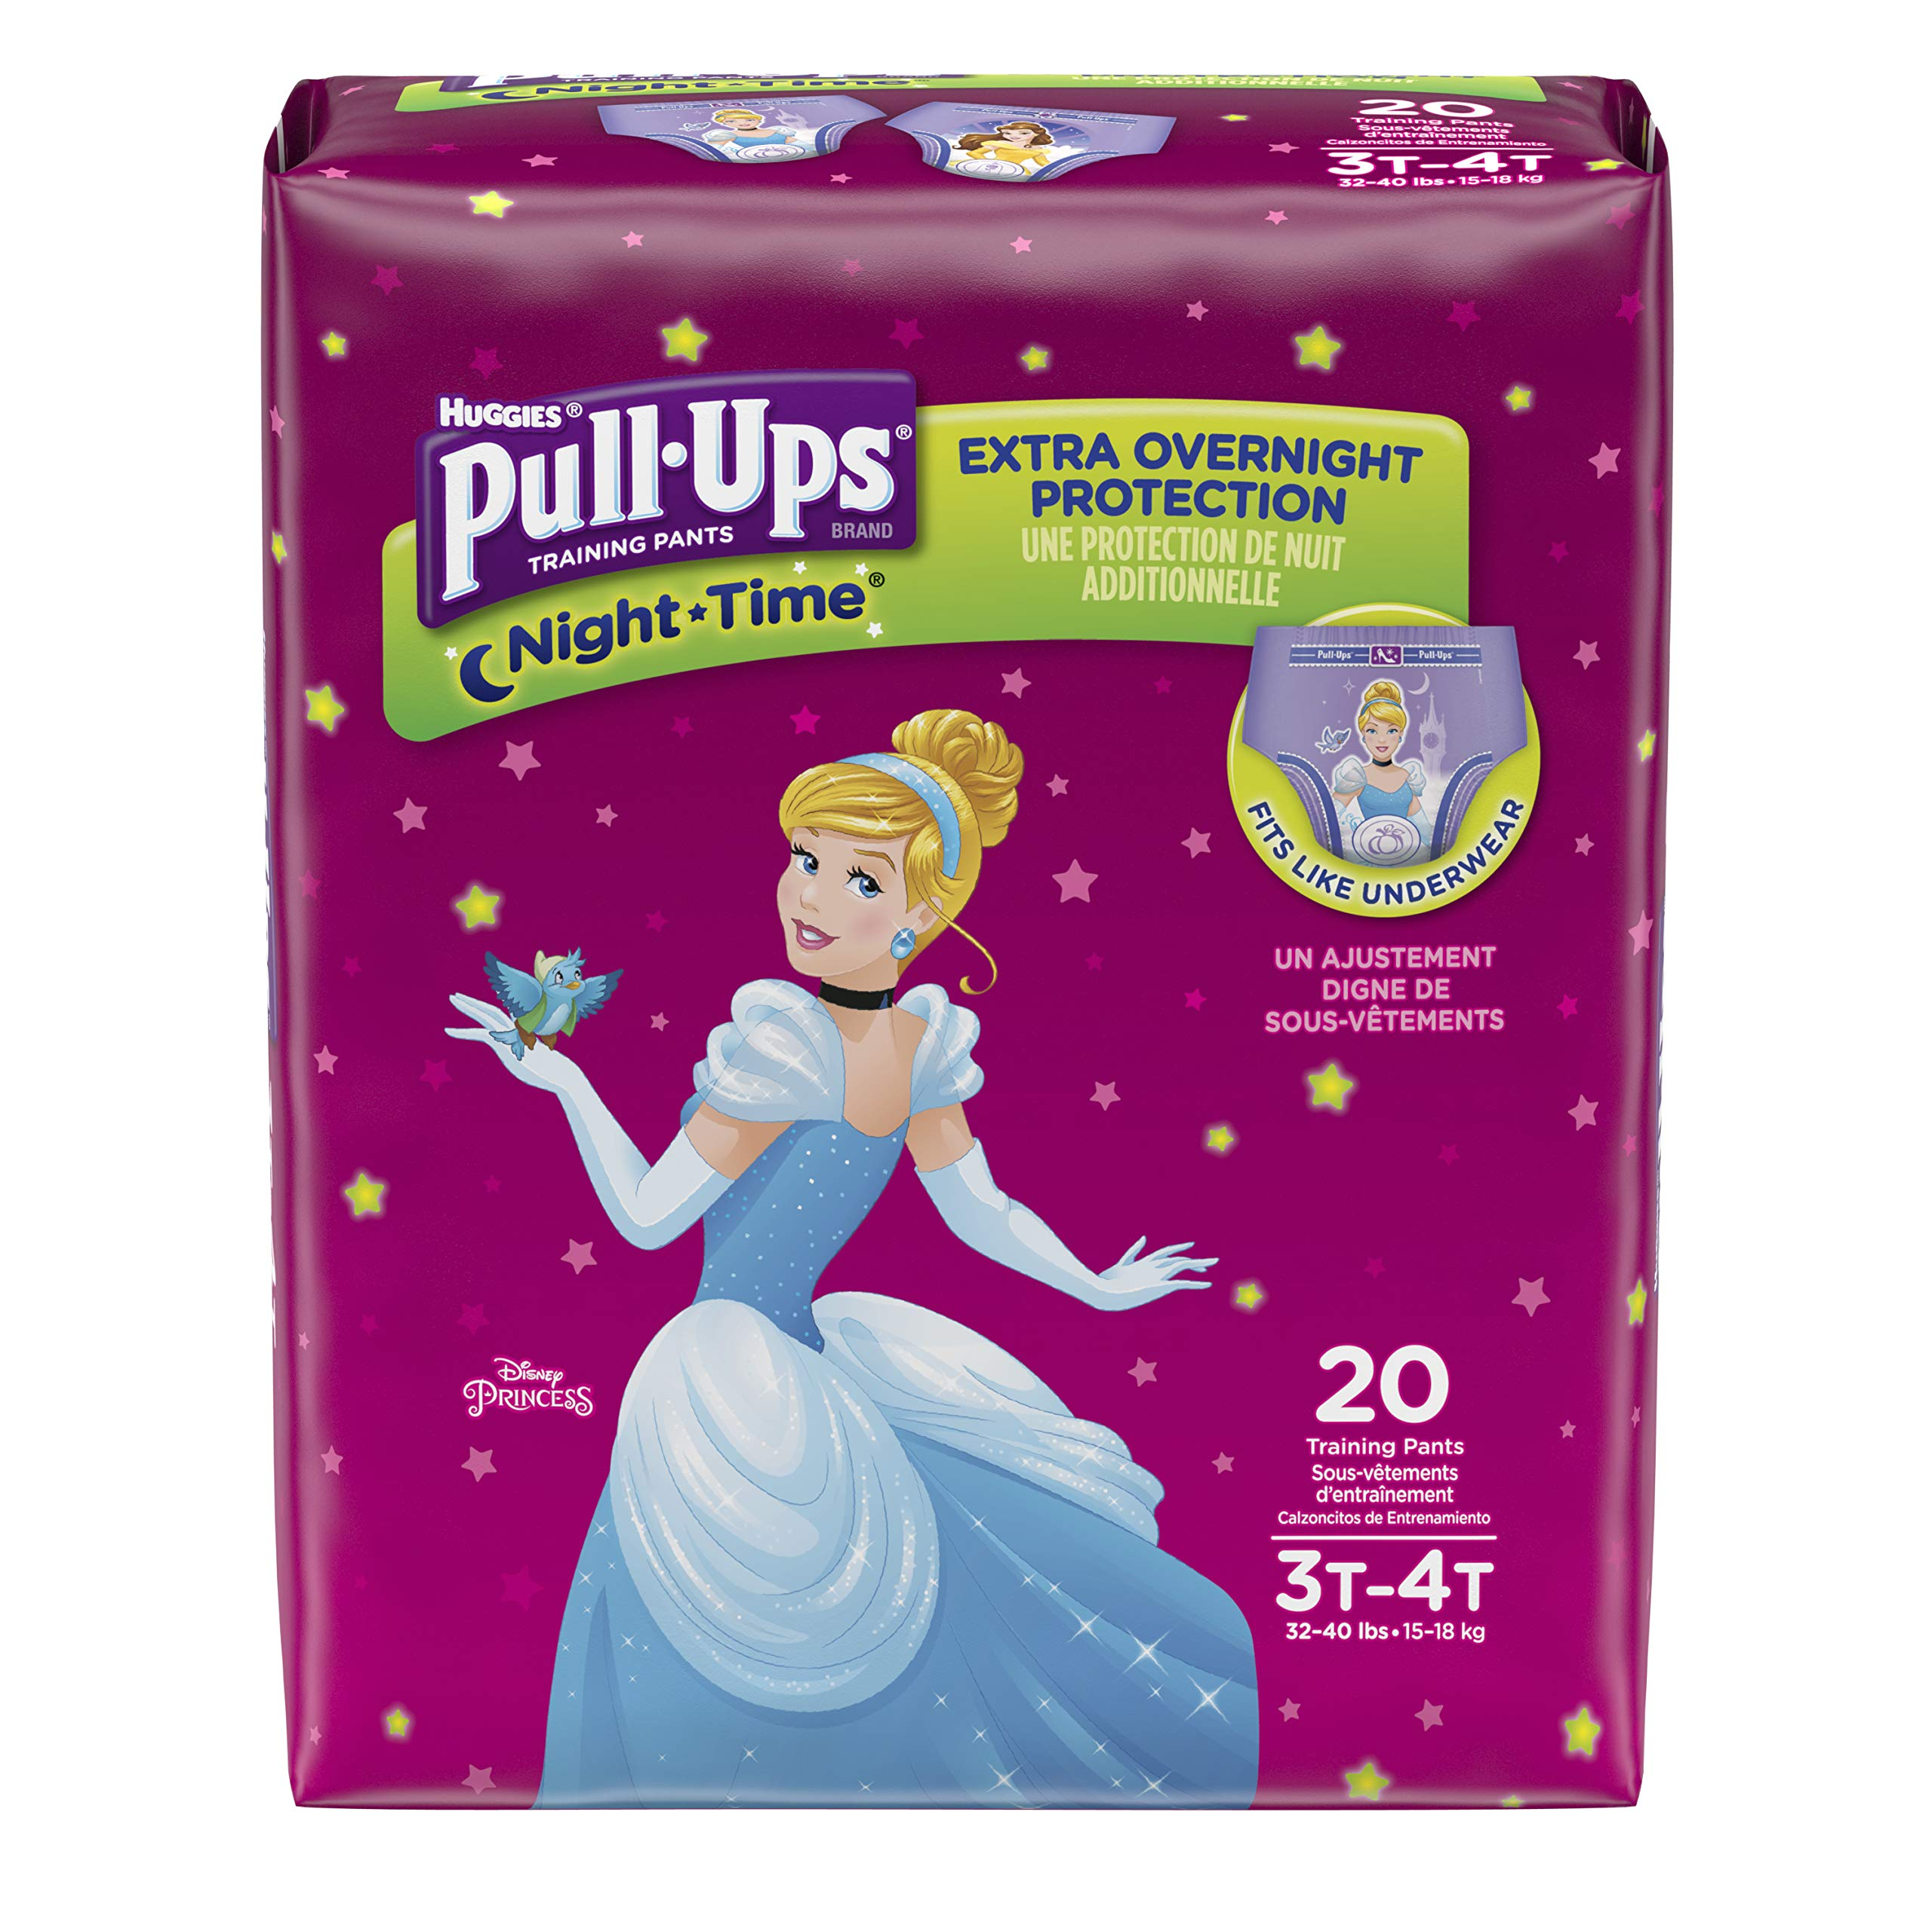 Pull-Ups Night-Time Potty Training Pants for Girls, 3T-4T (32-40 lb.), 20 Ct (Pack of 4). (Packaging May Vary)